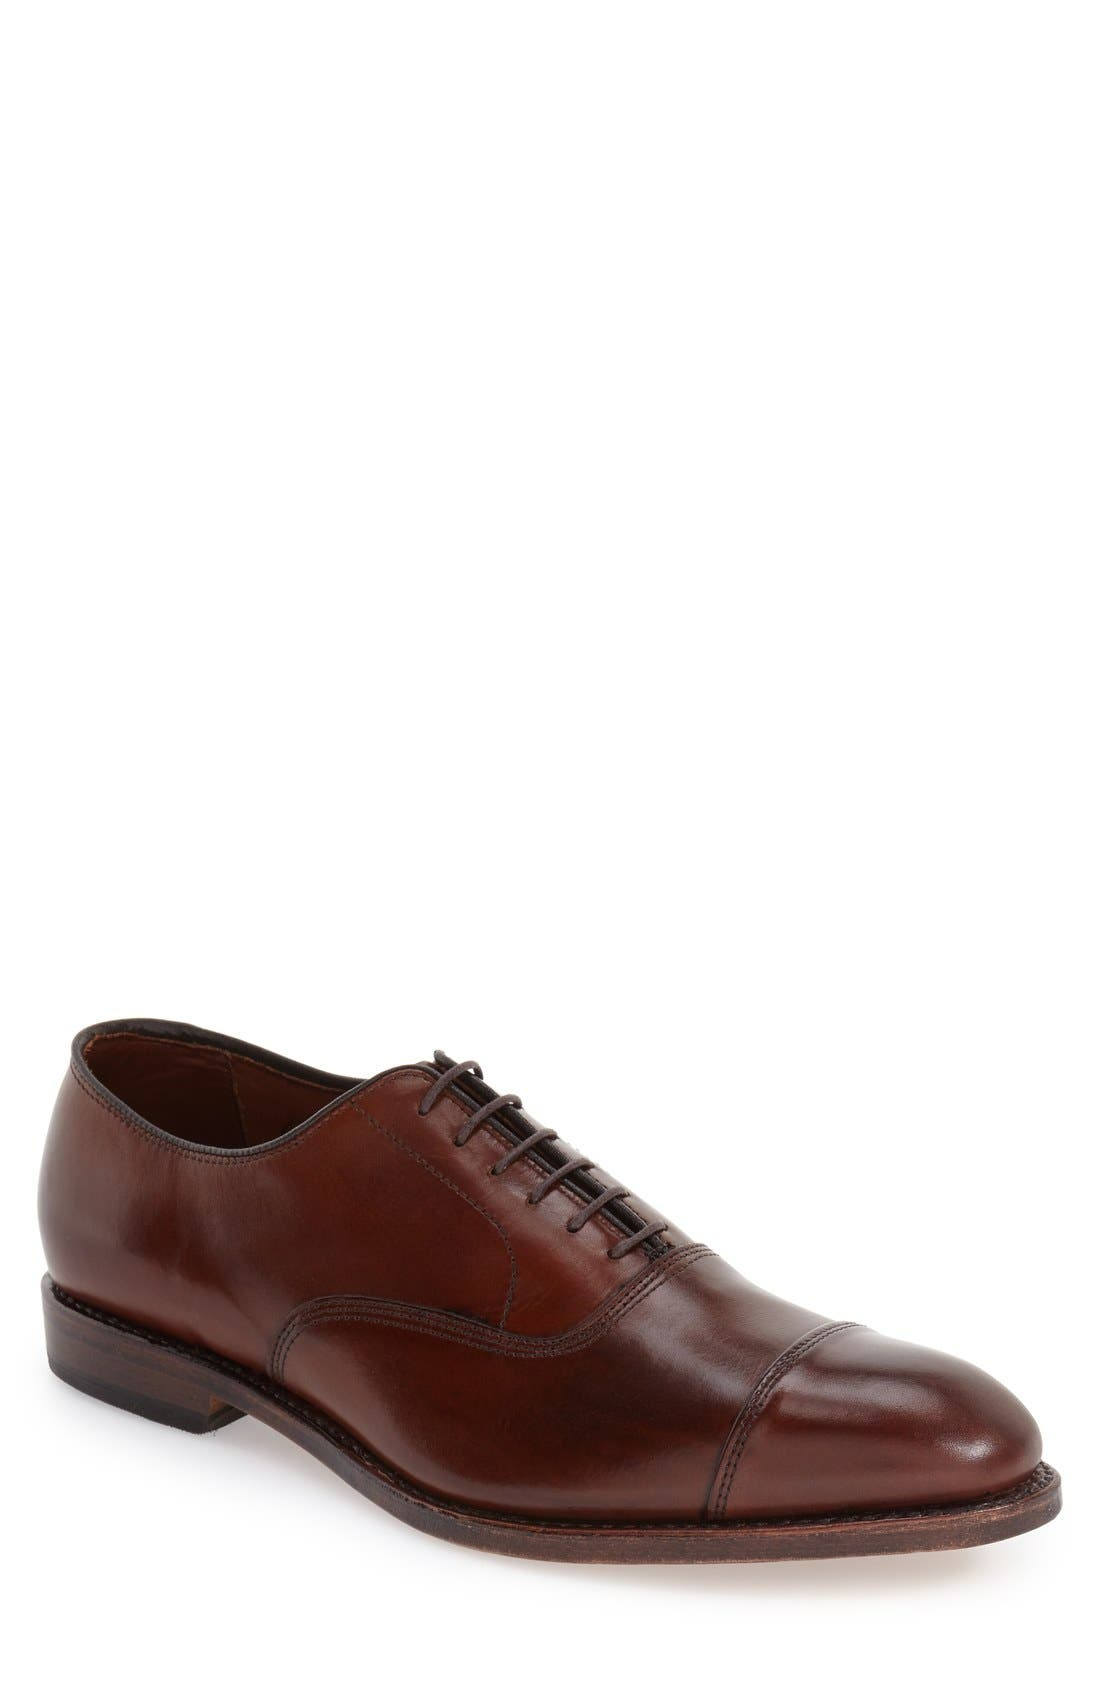 ALLEN EDMONDS, 'Park Avenue' Cap Toe Oxford, Main thumbnail 1, color, DARK CHILI BURNISHED